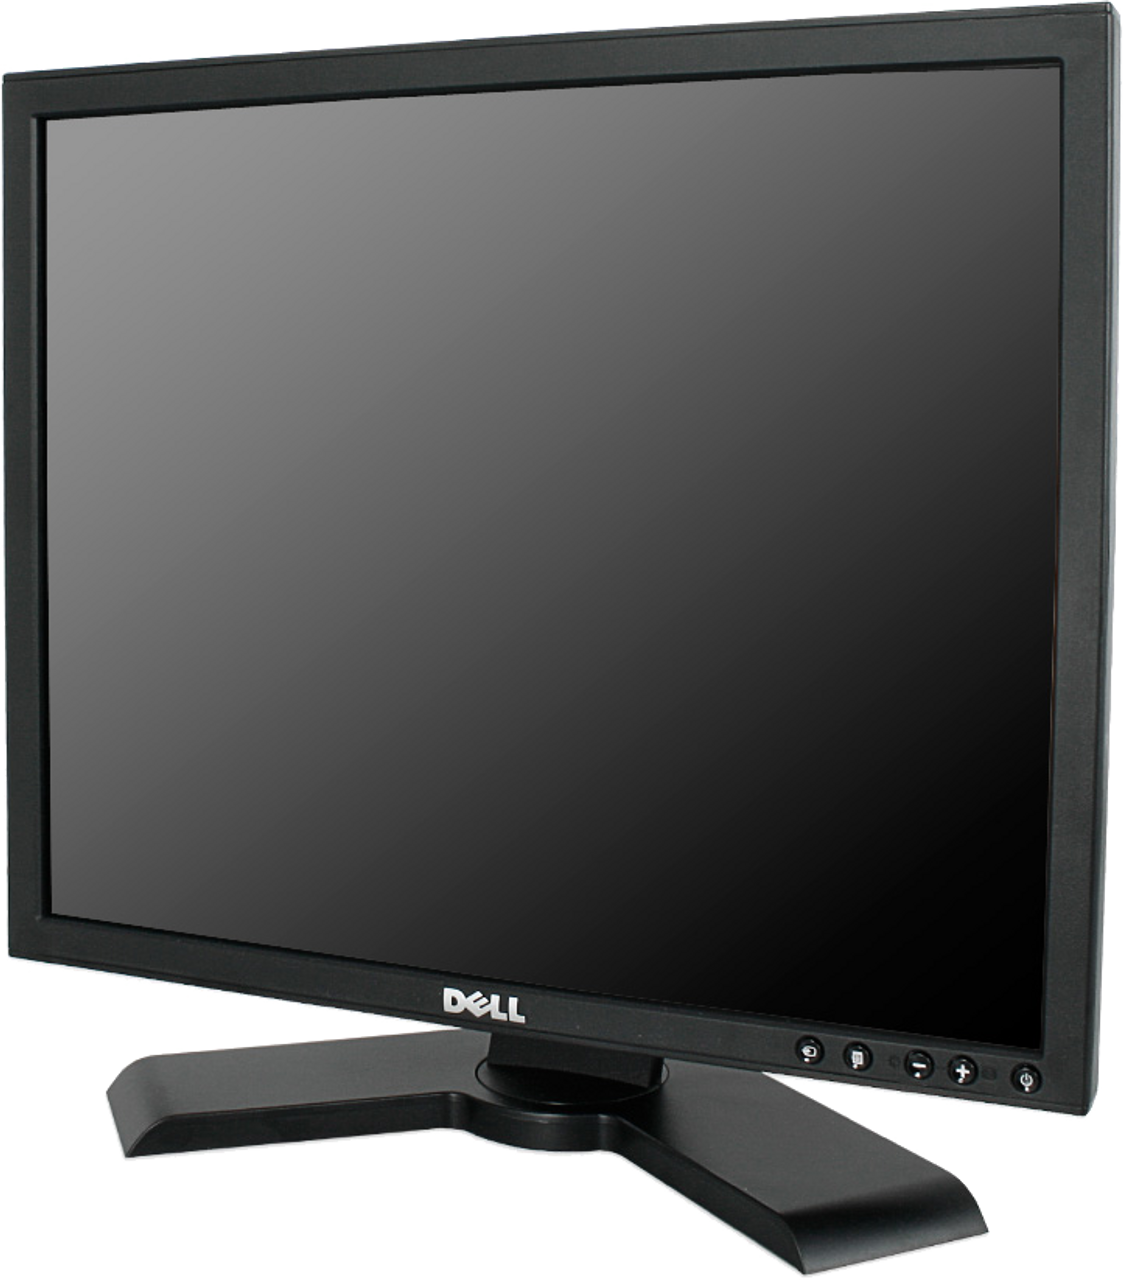 "Dell LCD Monitor P190Sf 19"" Standard"